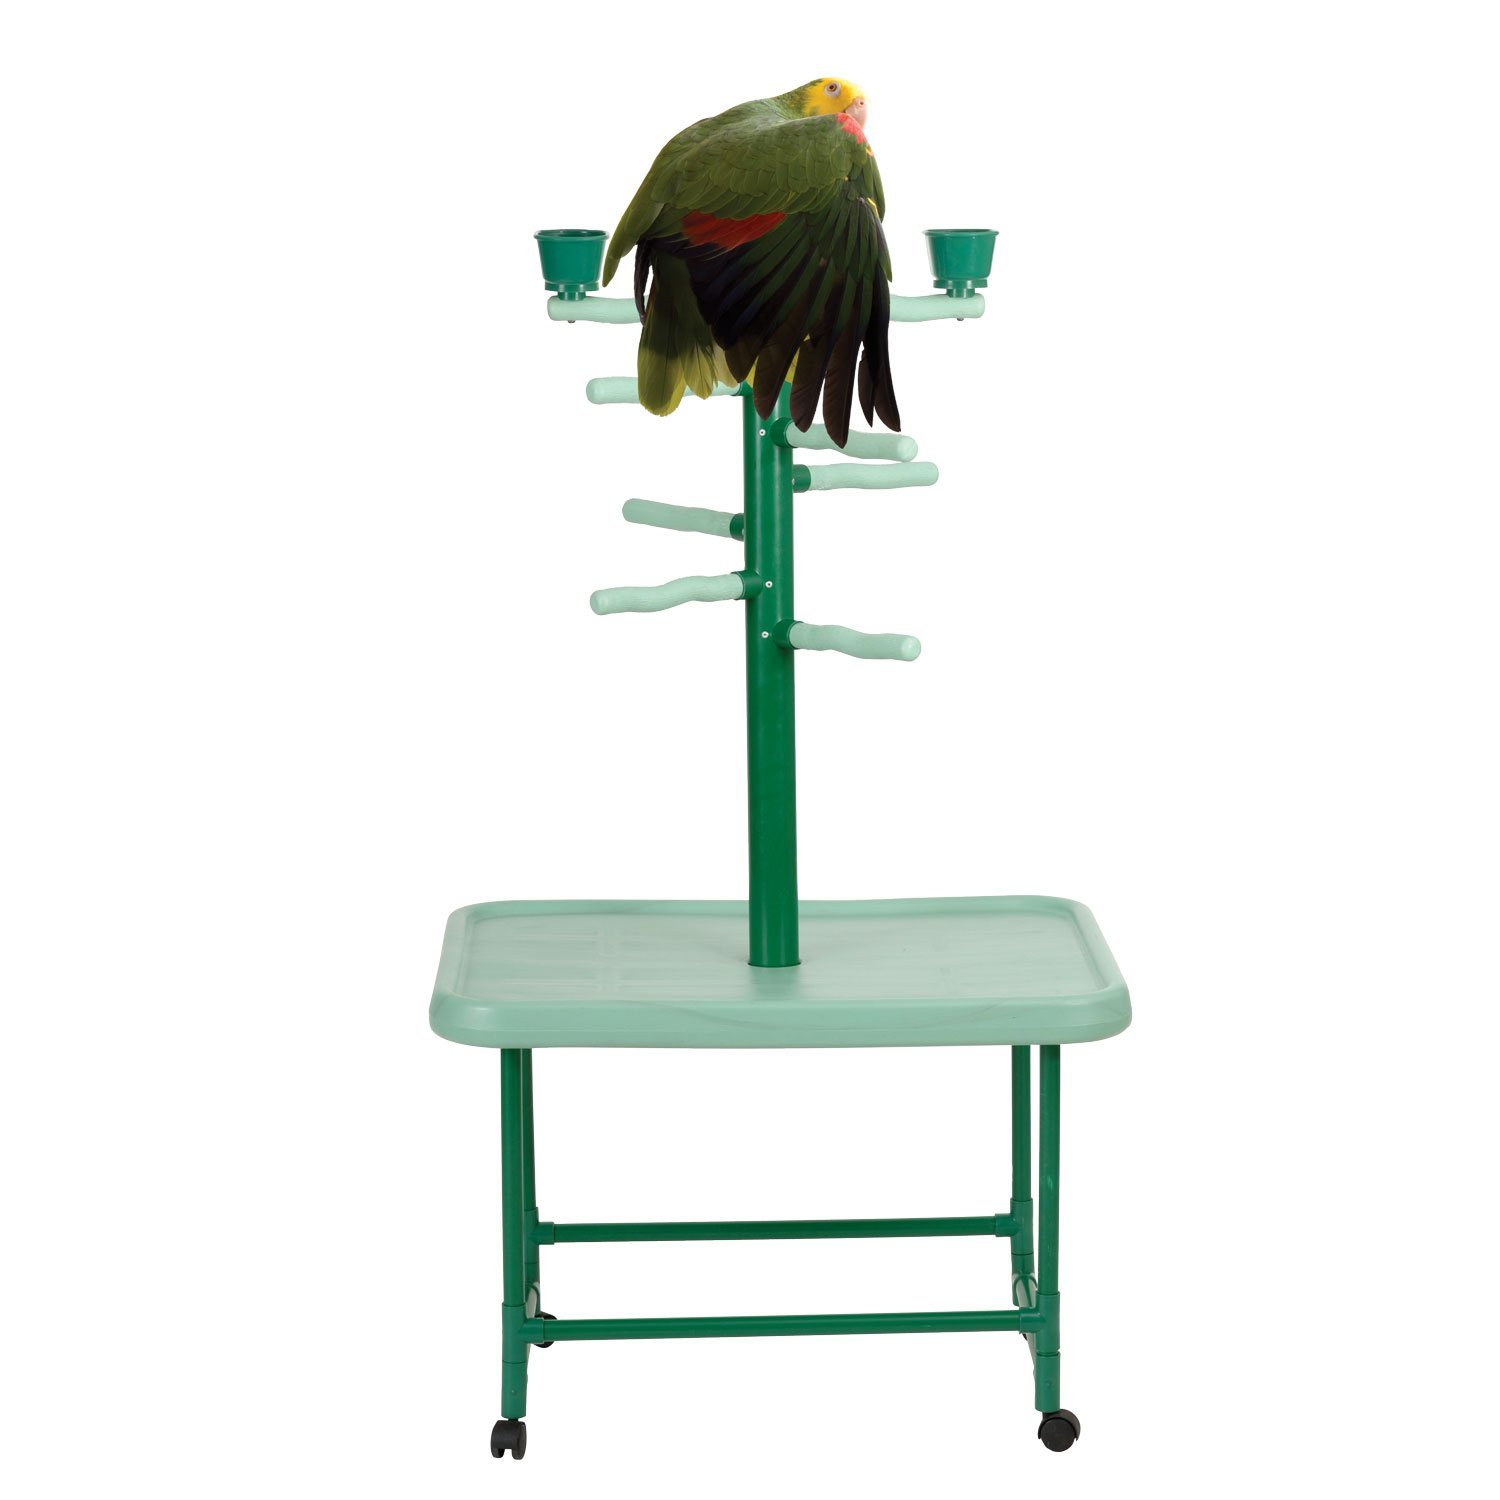 Acrobird, Medium Play Tower, 54-Inch H by 22-Foot D by 32-Inch L, Green by Acrobird